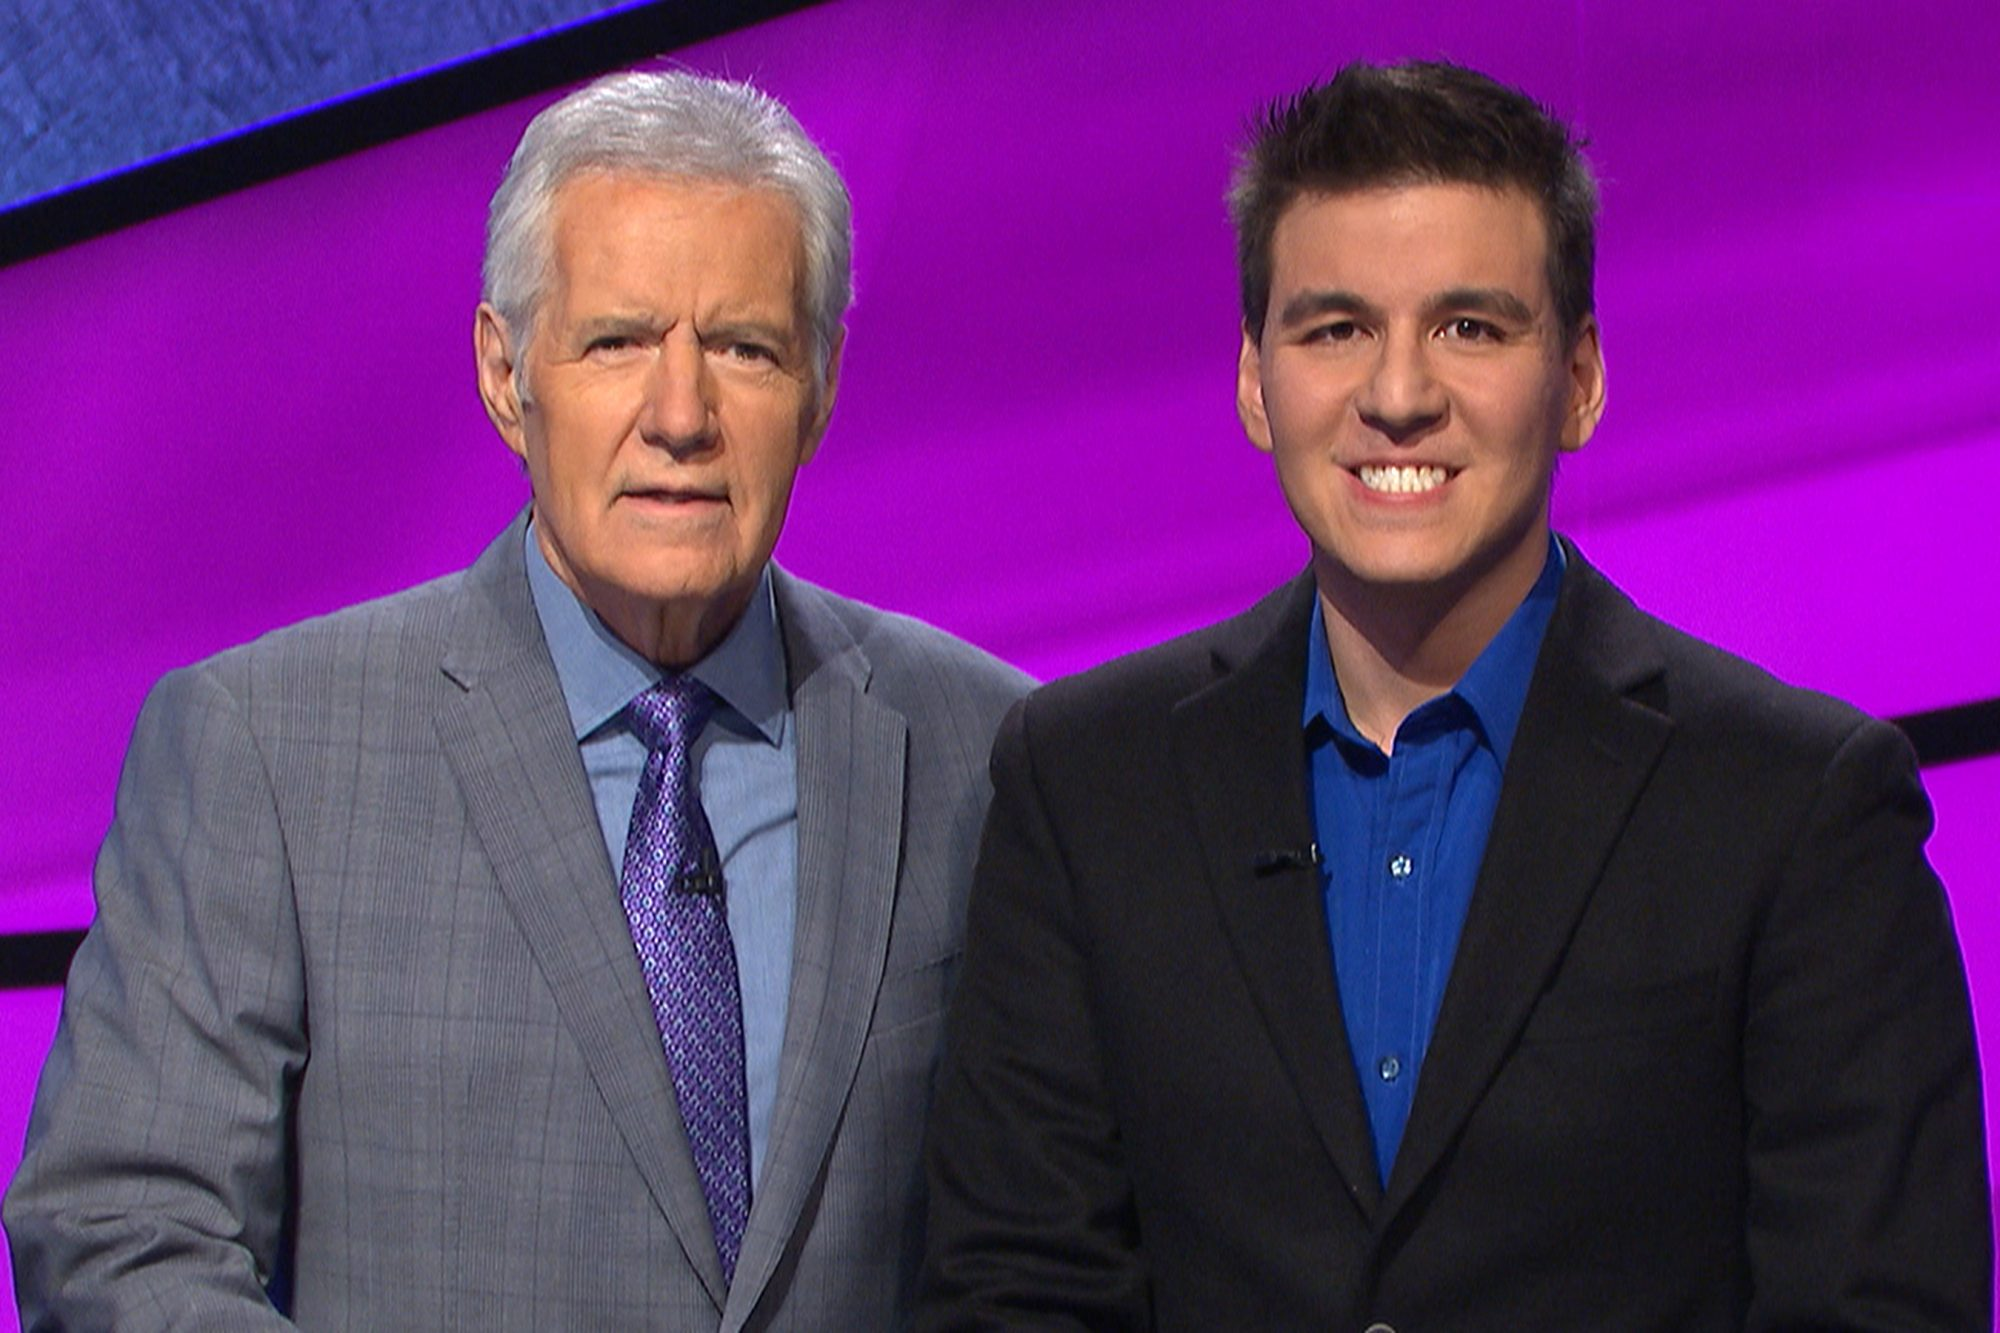 Jeopardy: Tournament of Champions